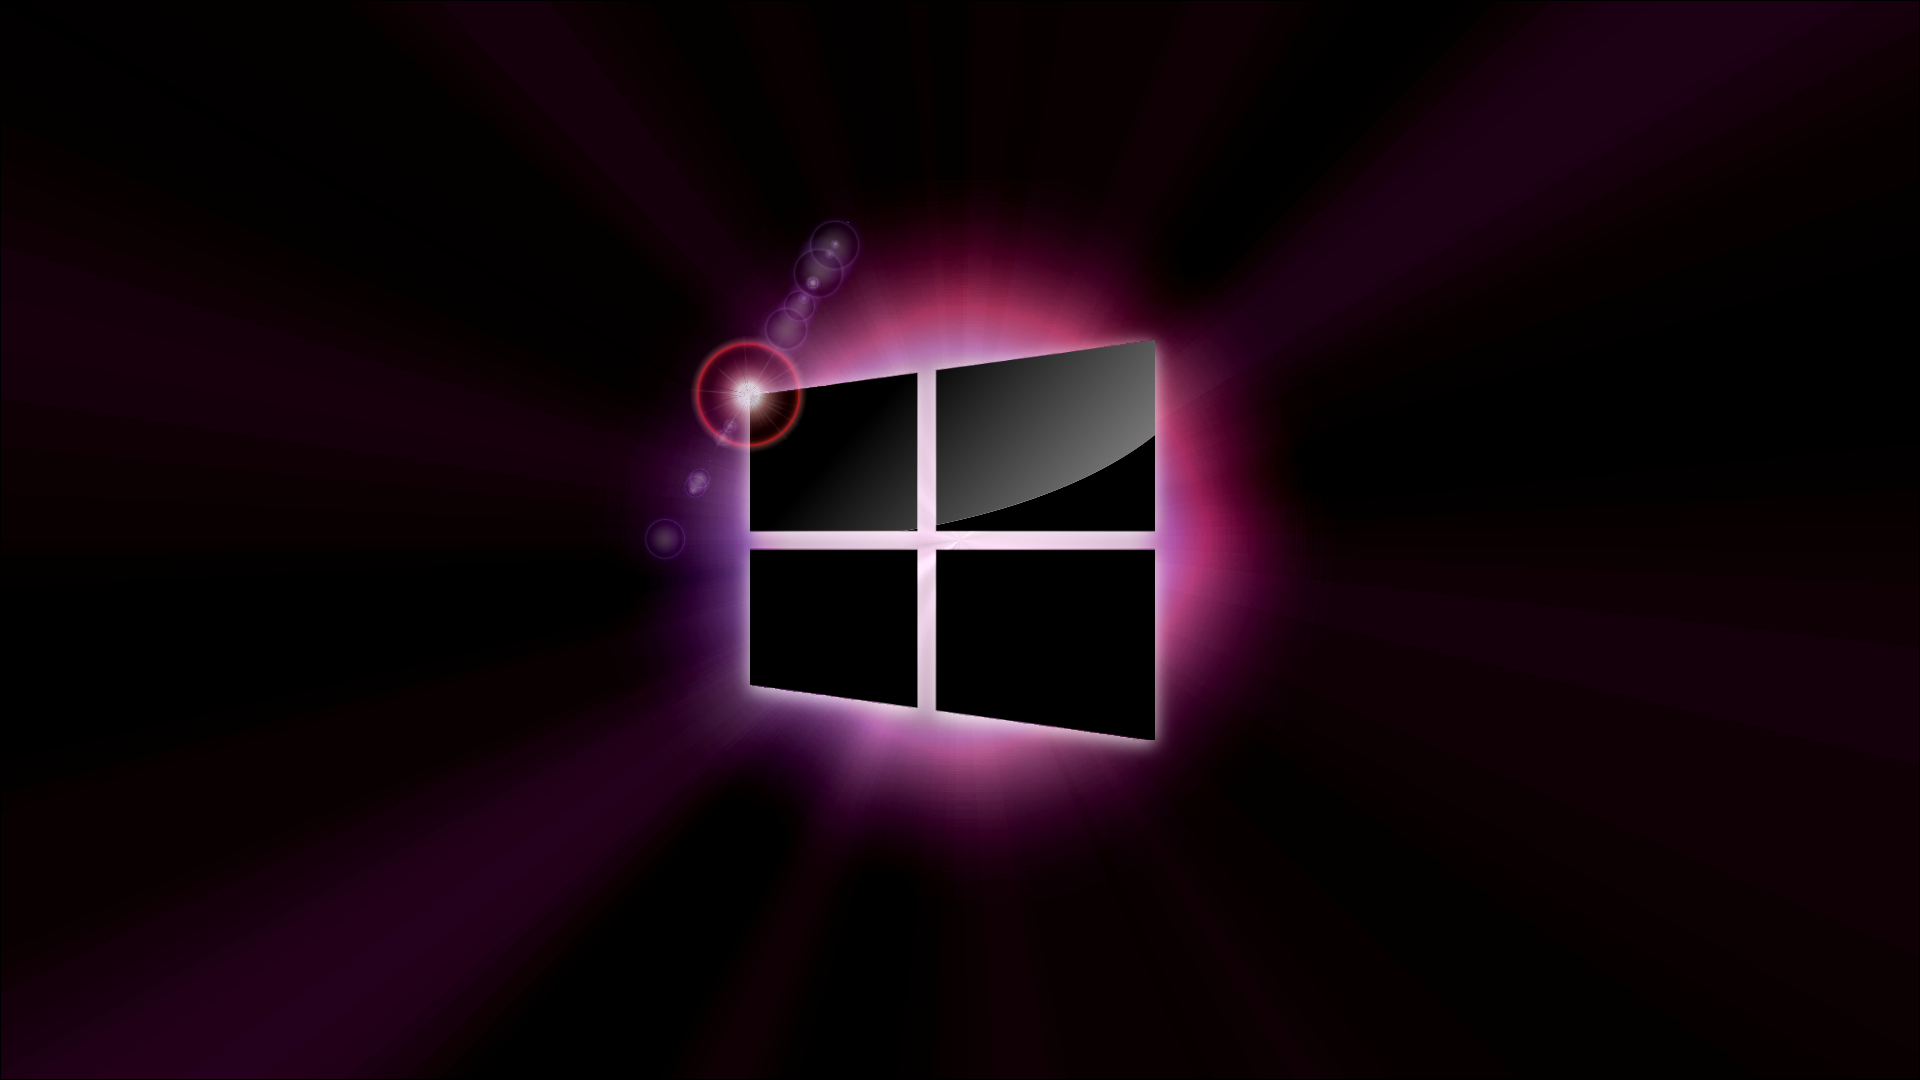 new windows 8 hd wallpapers - photo #33